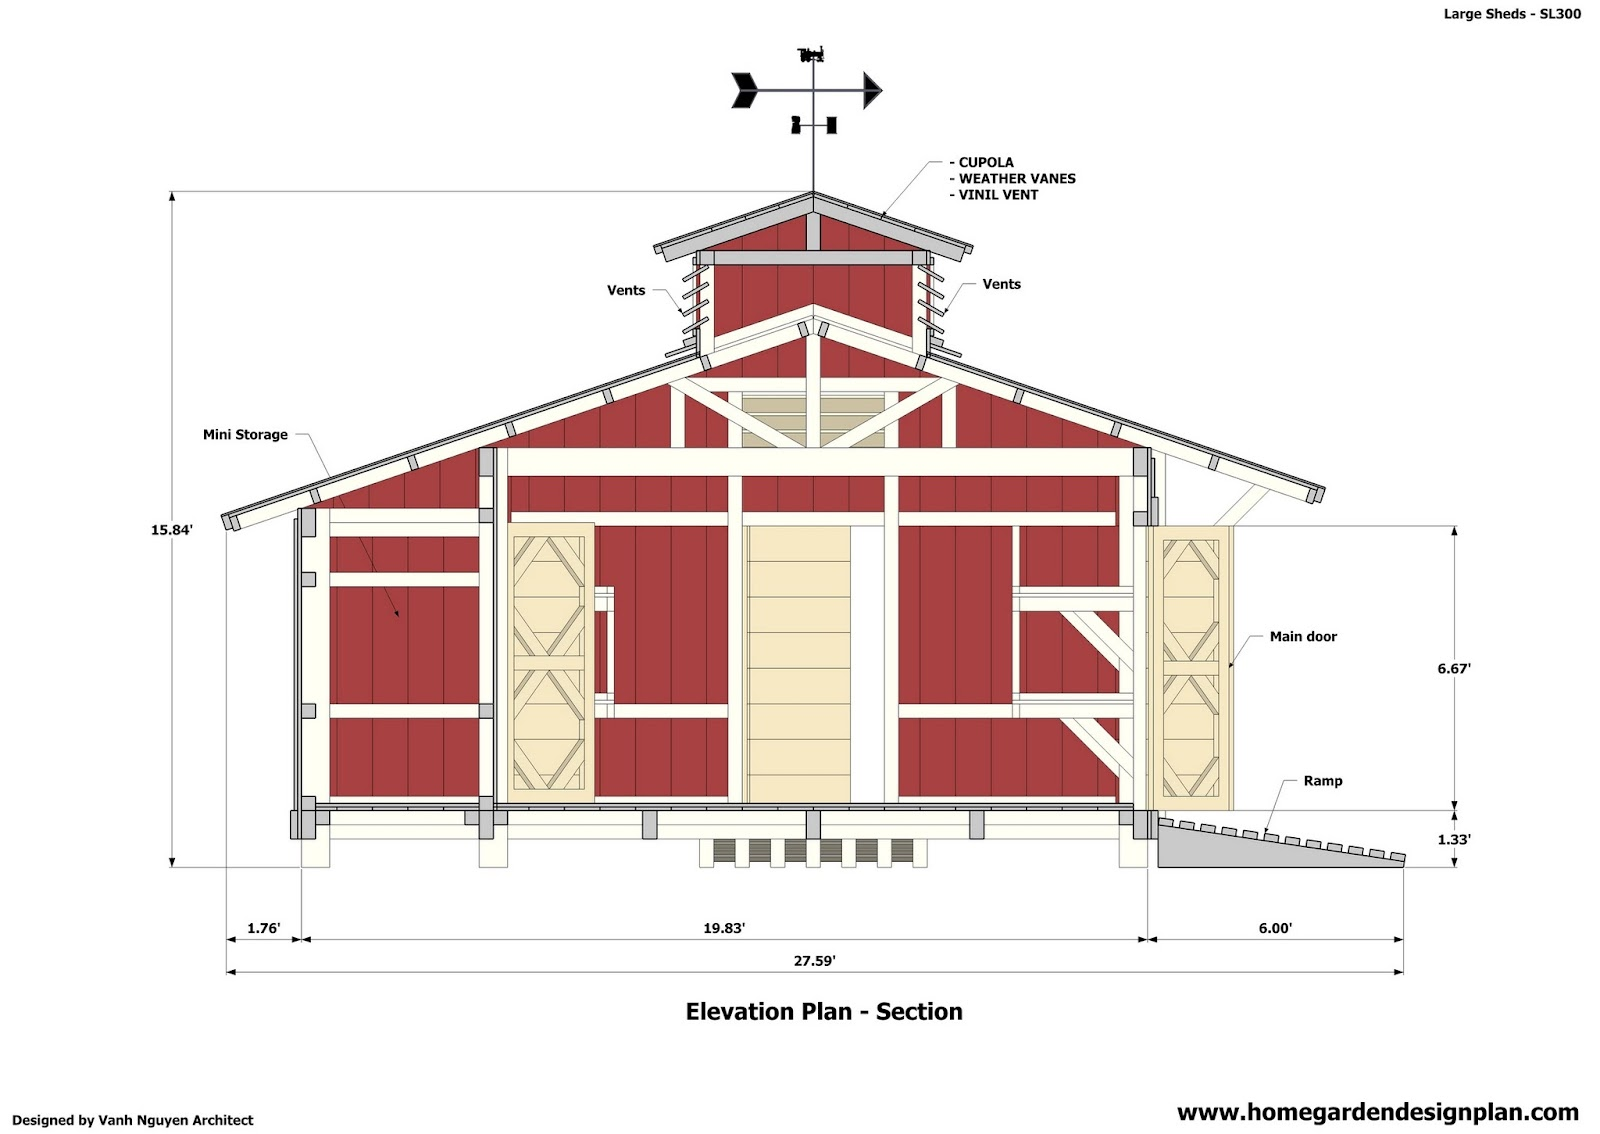 4 by 10 shed plans here nolaya for Barn storage building plans